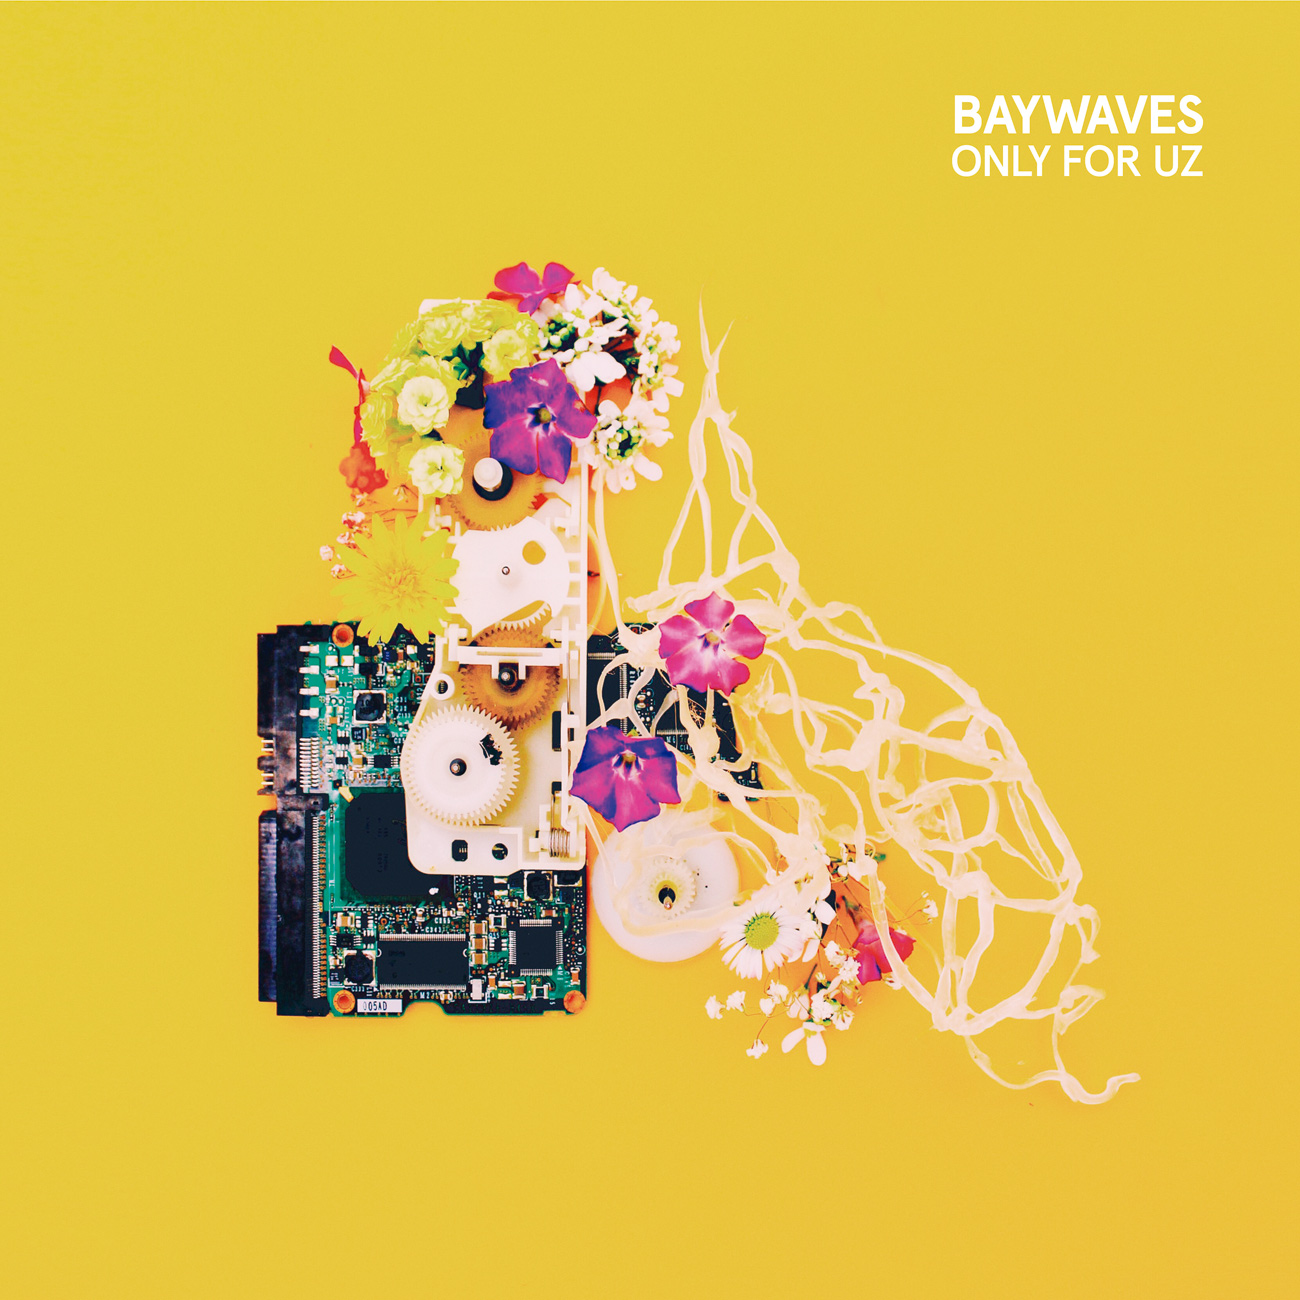 Baywaves